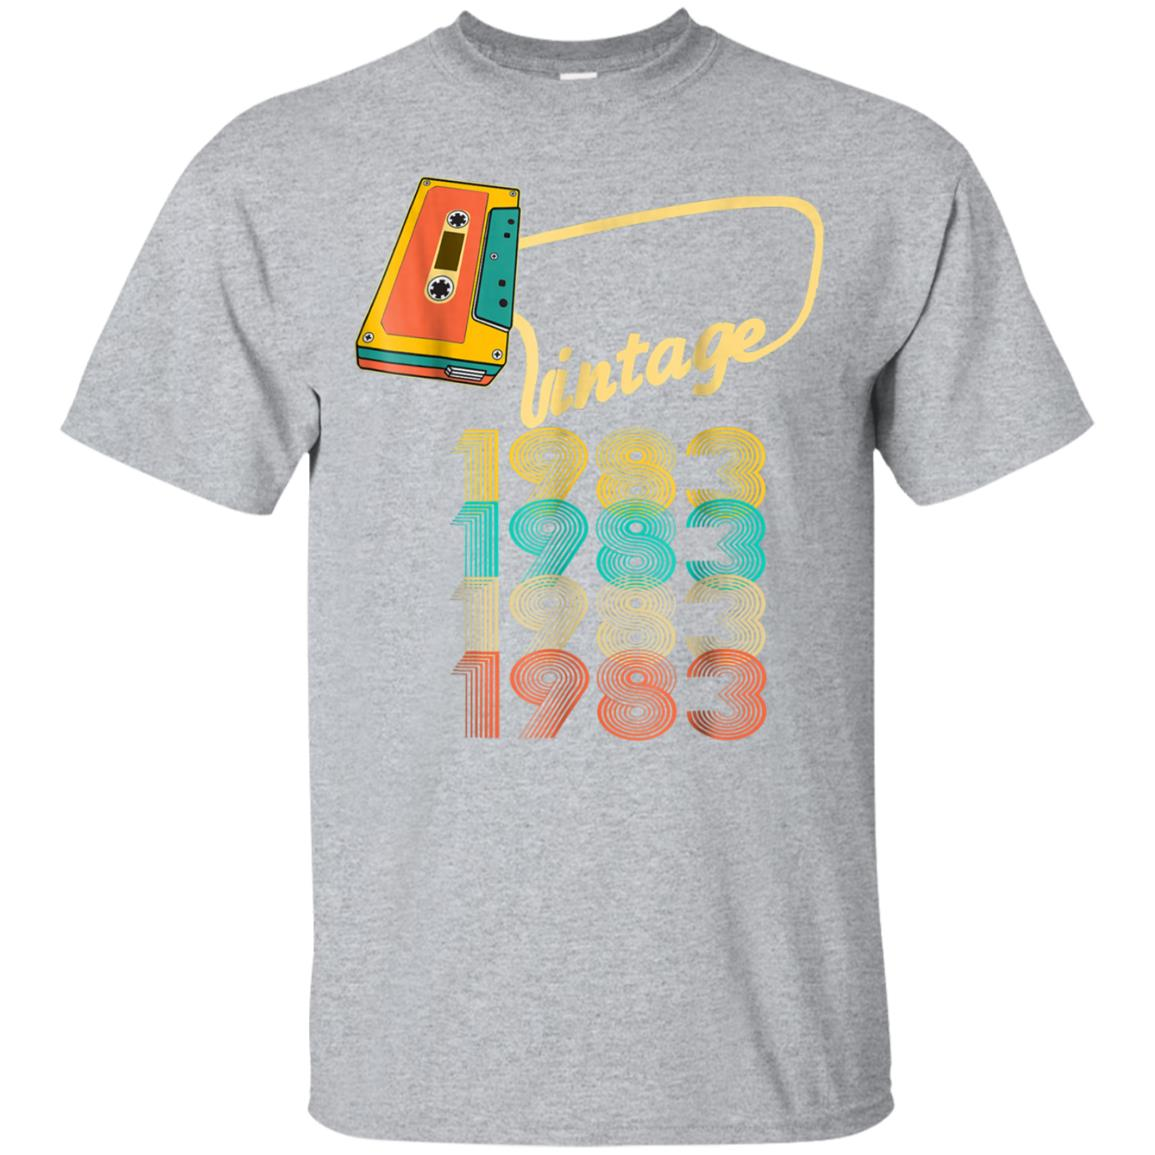 Vintage 1983 Shirt 35th Birthday Gifts 35 Years Old Awesome 99promocode